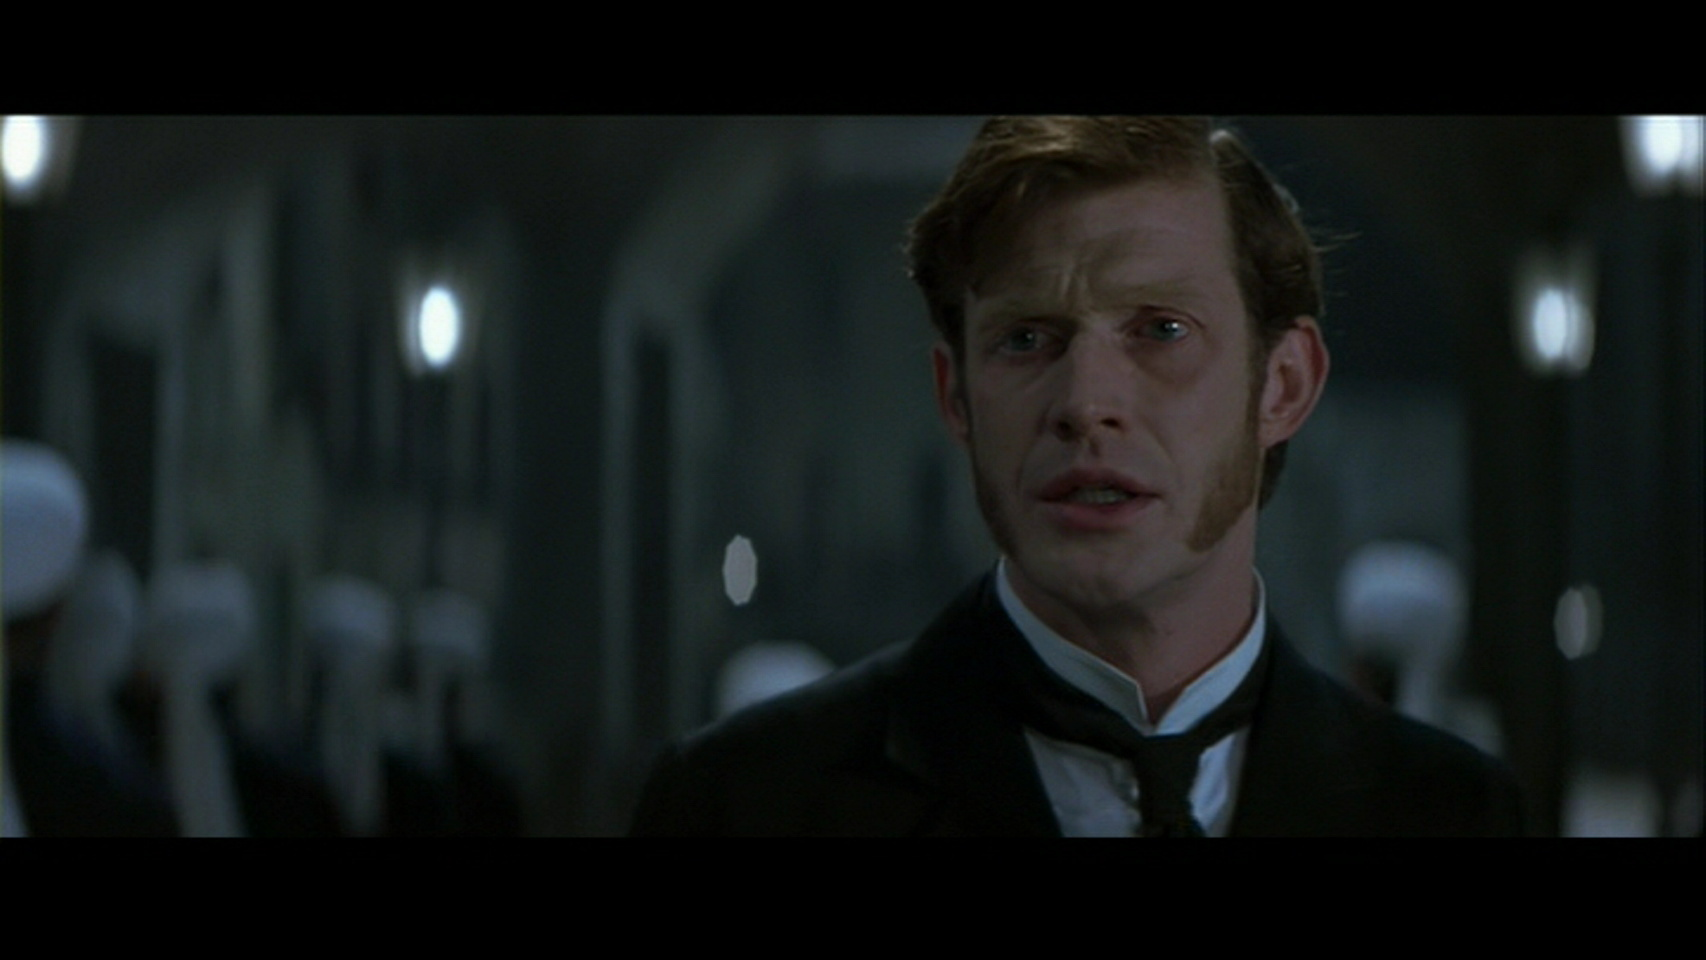 jason flemyng dr jekylljason flemyng wiki, jason flemyng height, jason flemyng net worth, jason flemyng transporter 2, jason flemyng instagram, jason flemyng imdb, jason flemyng wikipedia, jason flemyng, jason flemyng azazel, jason flemyng twitter, jason flemyng jamie oliver, jason flemyng lock stock, jason flemyng actor, jason flemyng dr jekyll, jason flemyng facebook, jason flemyng young, jason flemyng benjamin button, jason flemyng filmography, jason flemyng wedding, jason flemyng wife